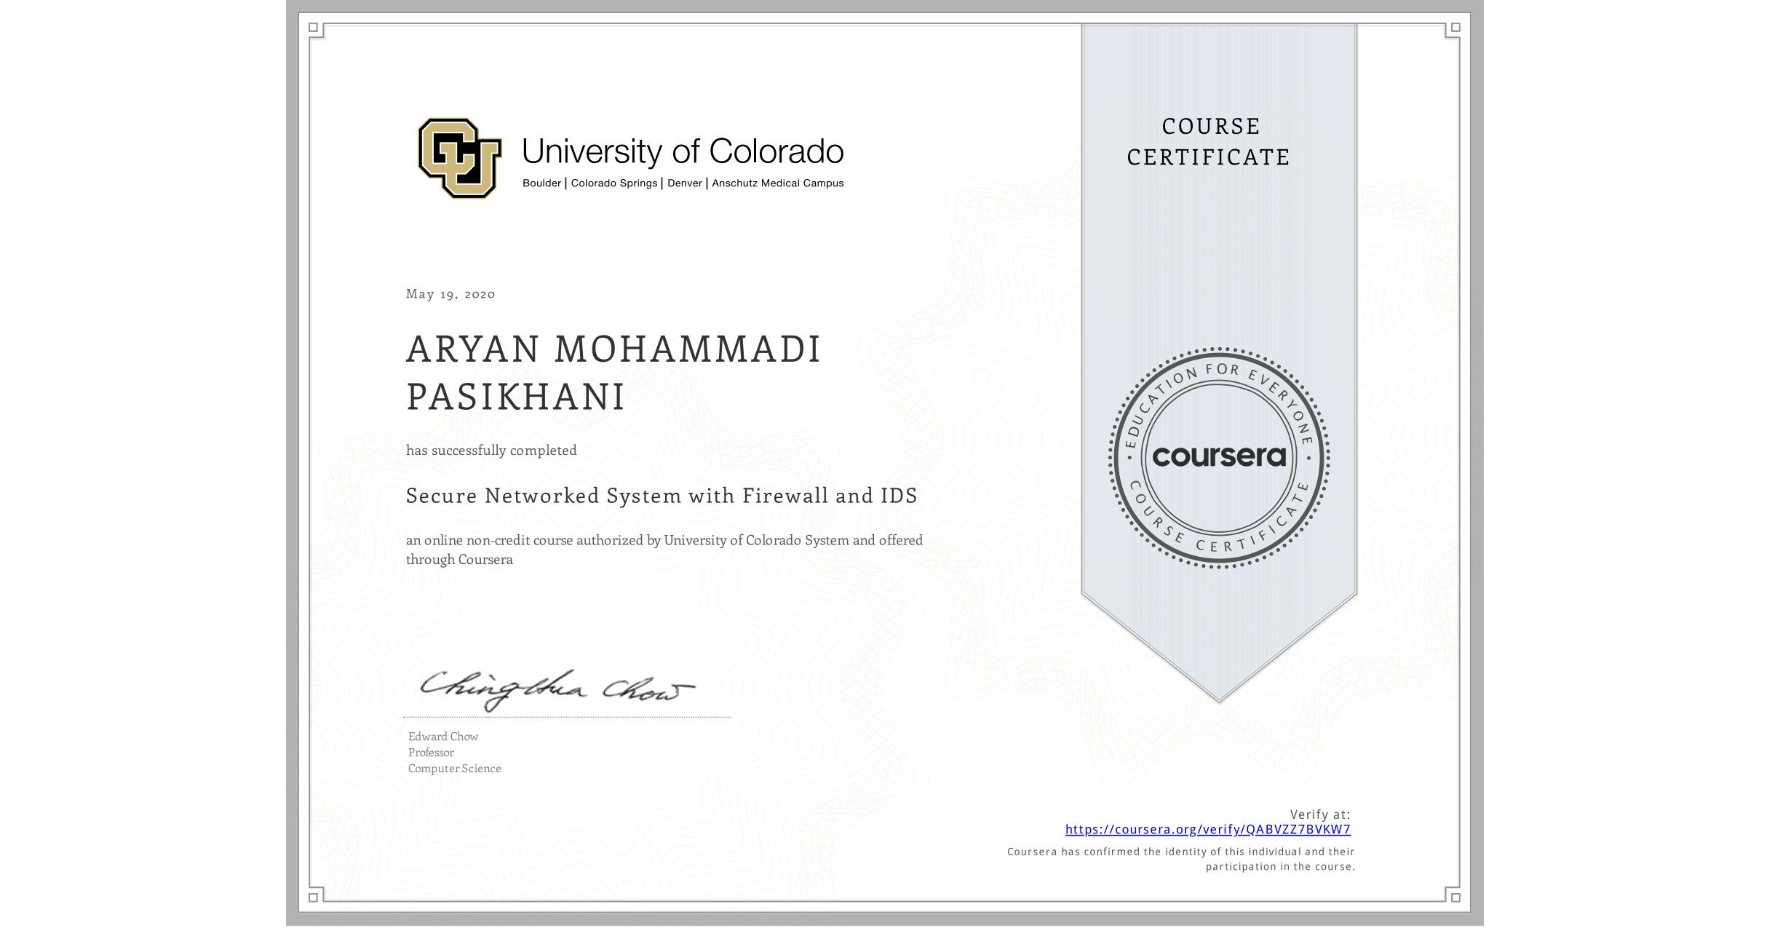 View certificate for ARYAN MOHAMMADI PASIKHANI, Secure Networked System with Firewall and IDS, an online non-credit course authorized by University of Colorado System and offered through Coursera